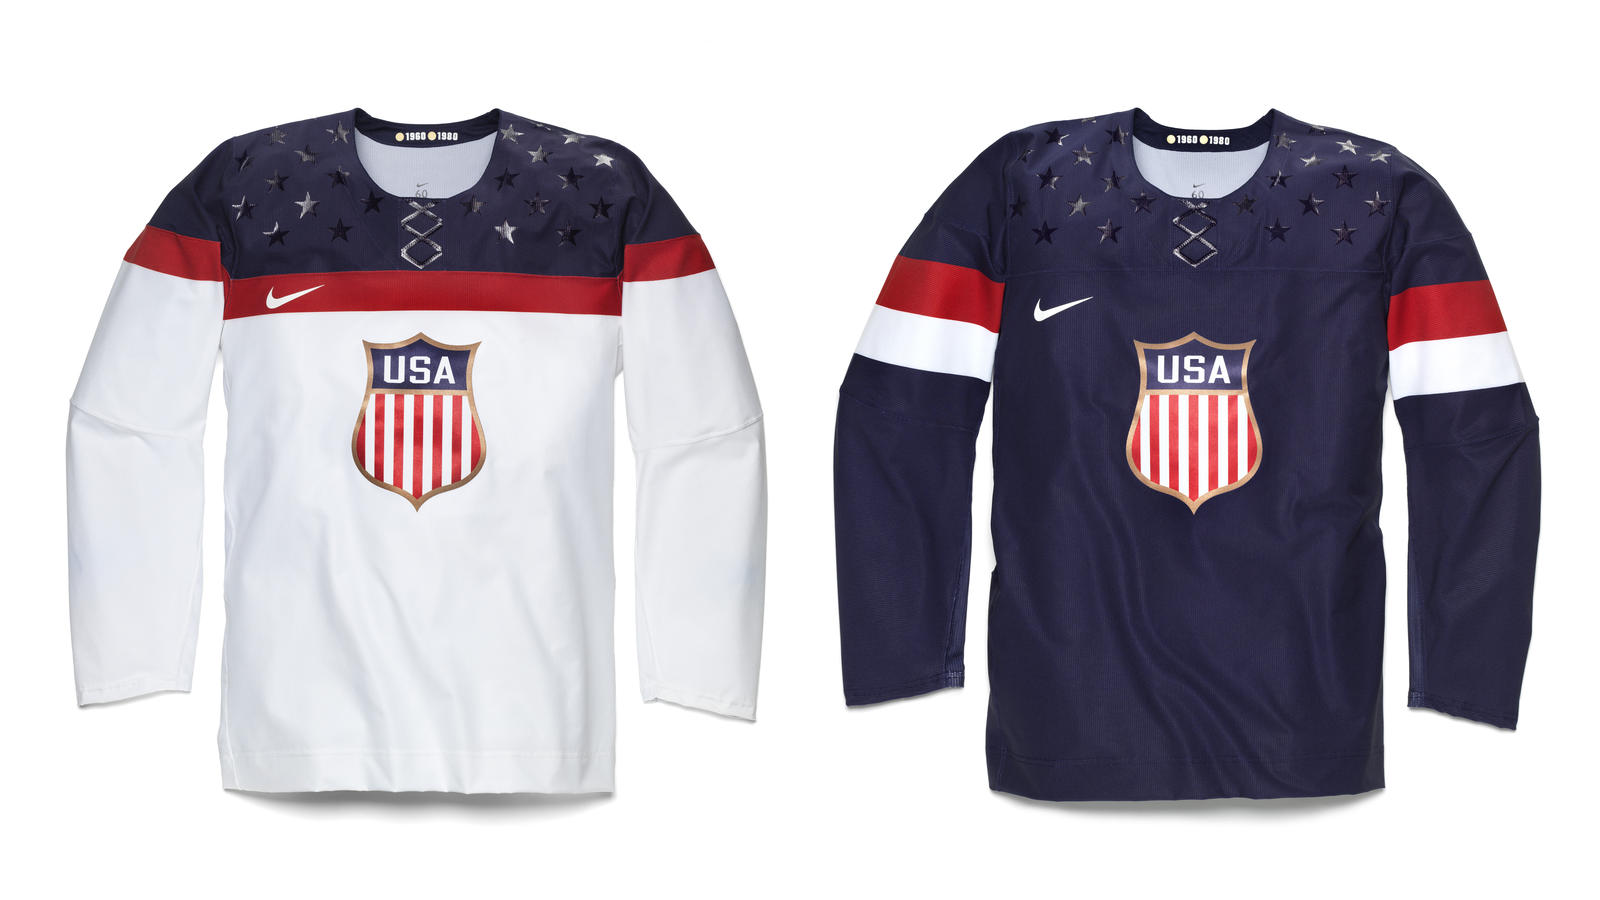 nike_usa_jersey_2-up_hd_1600.jpg